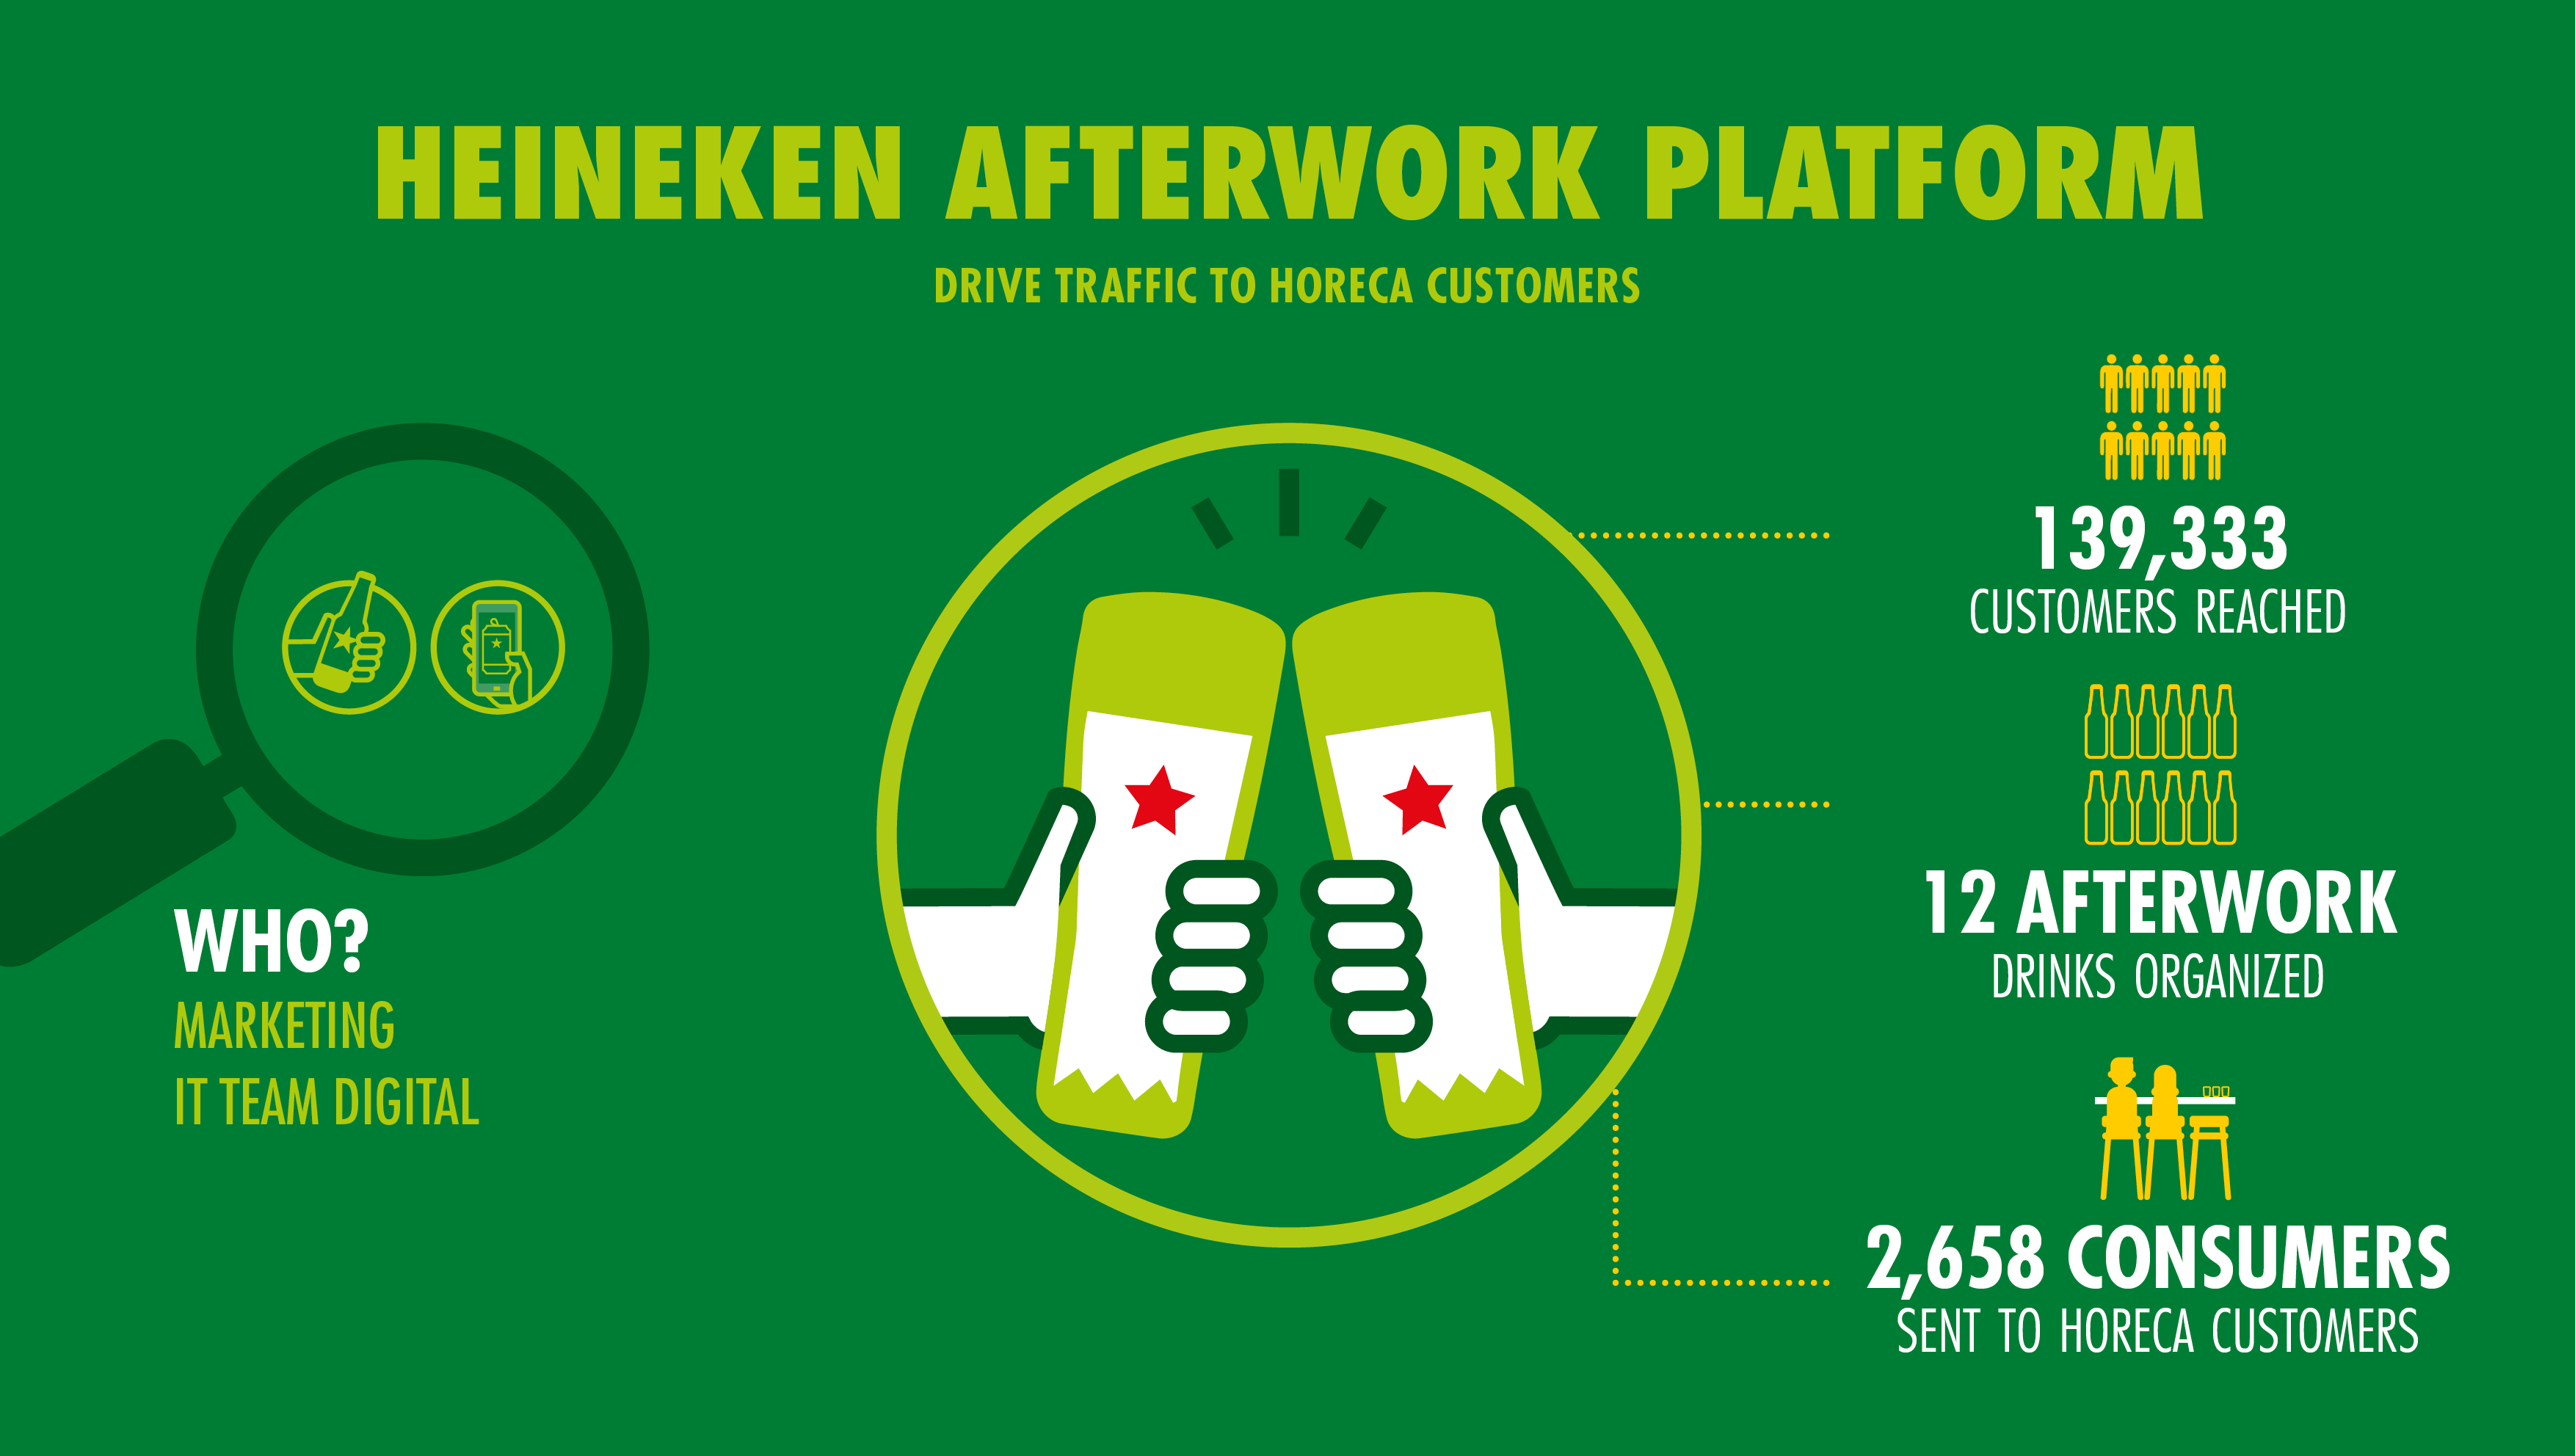 Kraakmakend, infographic, illustratie, rotterdam, interaction design, heineken